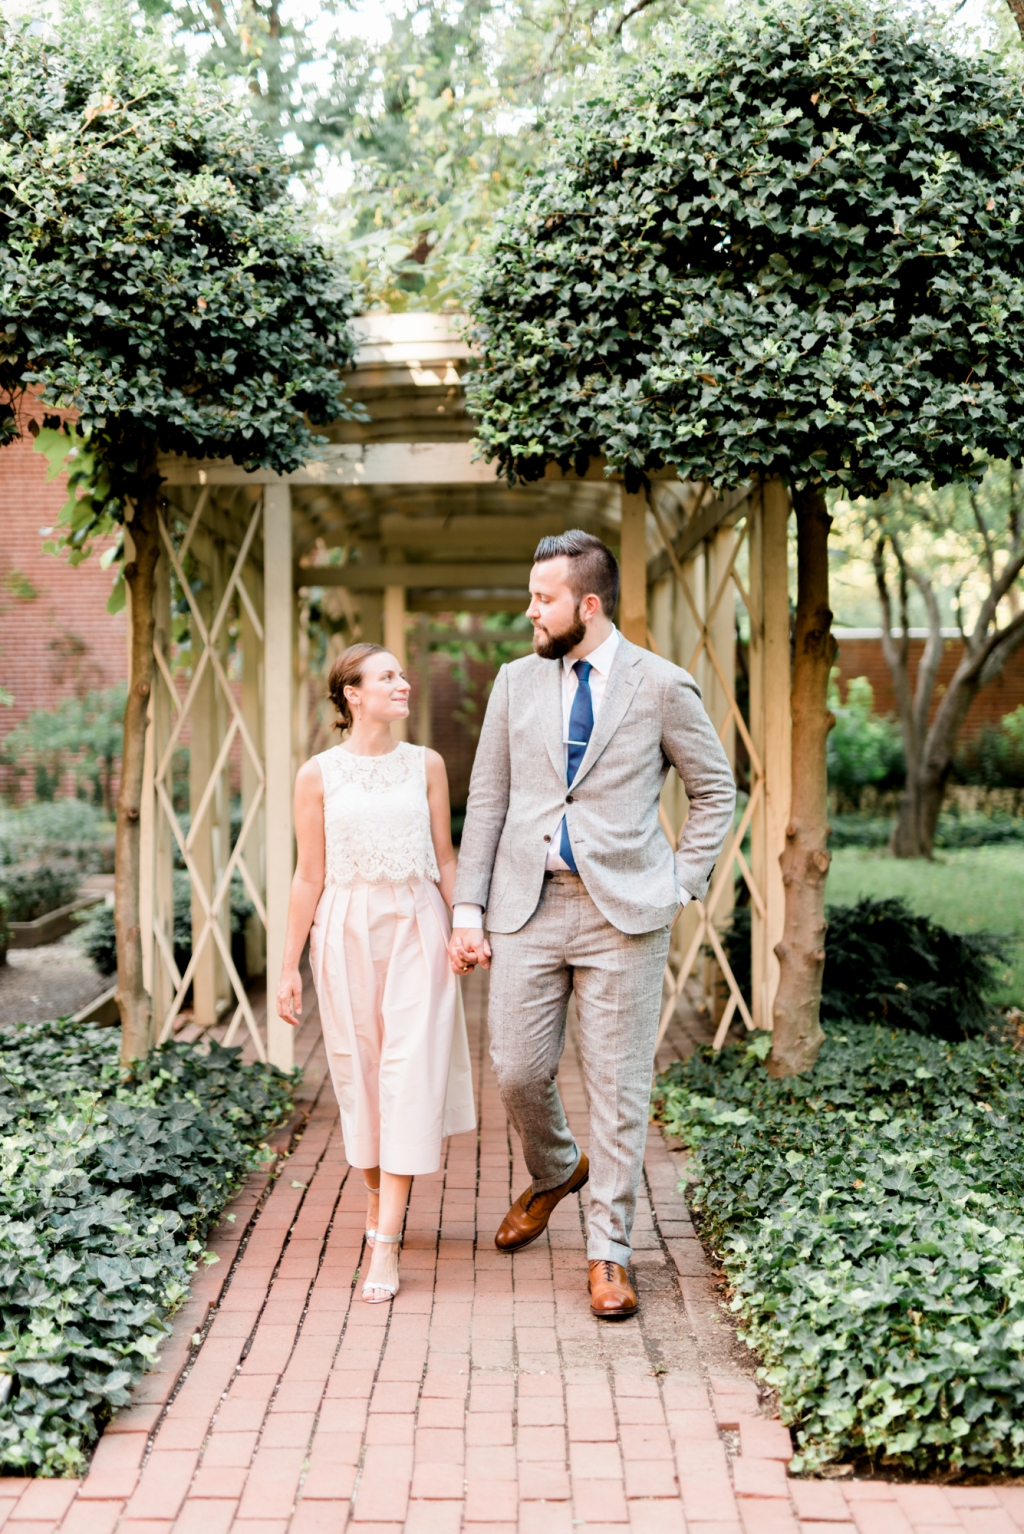 haley-richter-photography-intimate-summer-wedding-palomar-hotel-old-city-philadelphia-119